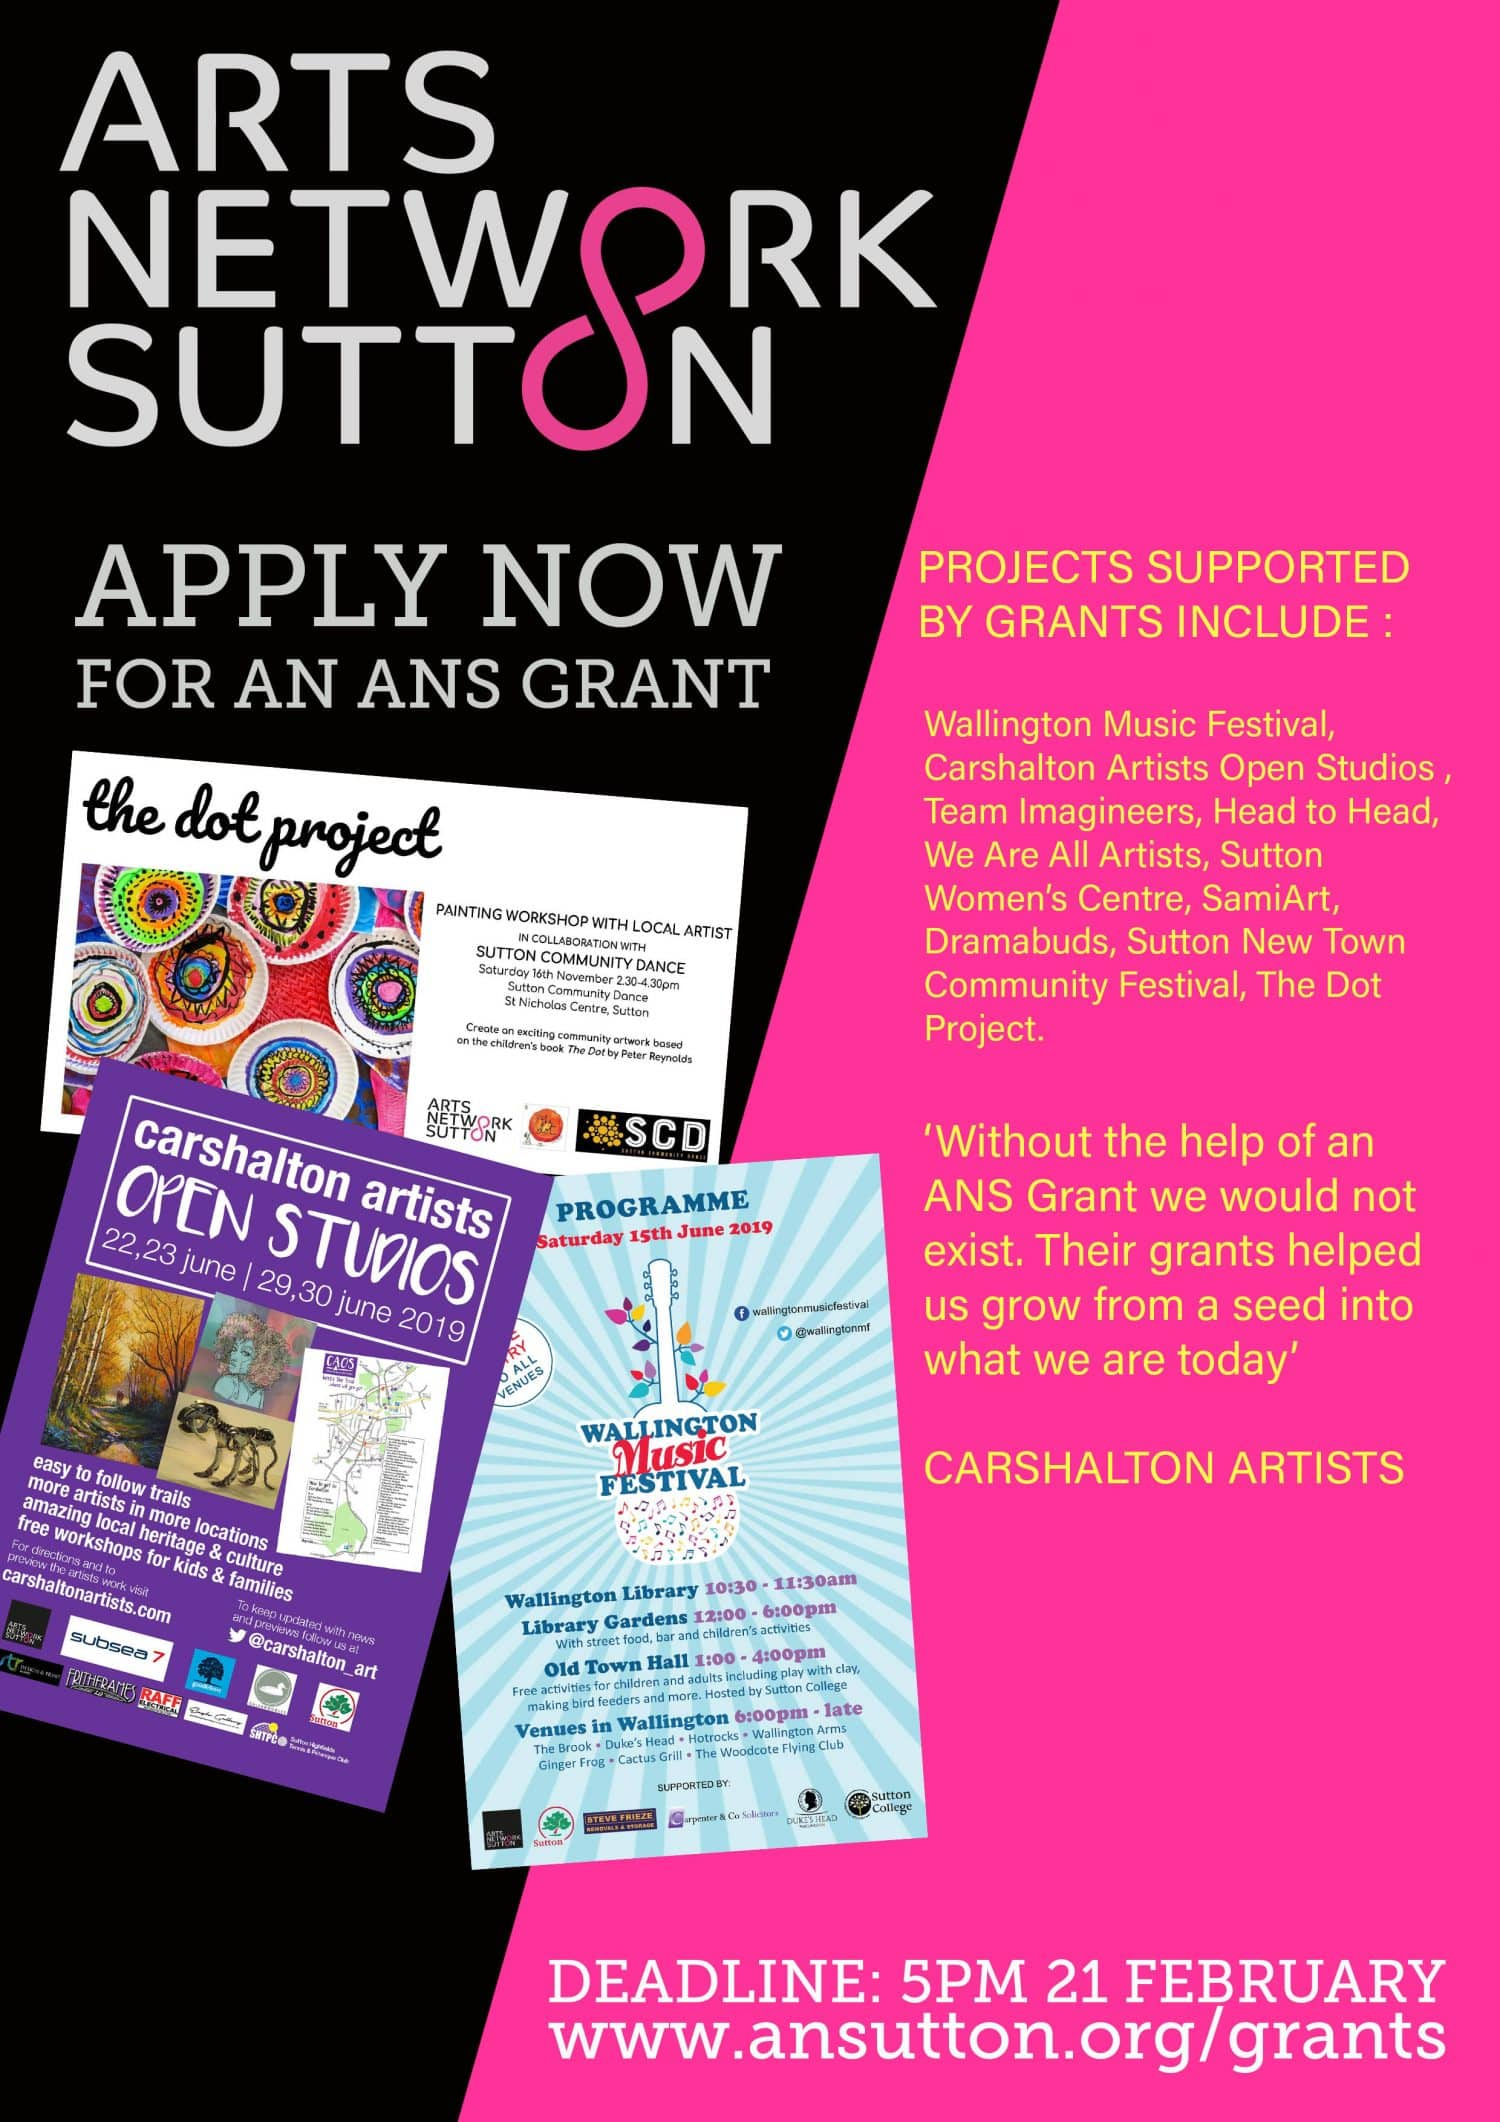 Deadline getting closer for grants of up to £1,000 from Arts Network Sutton